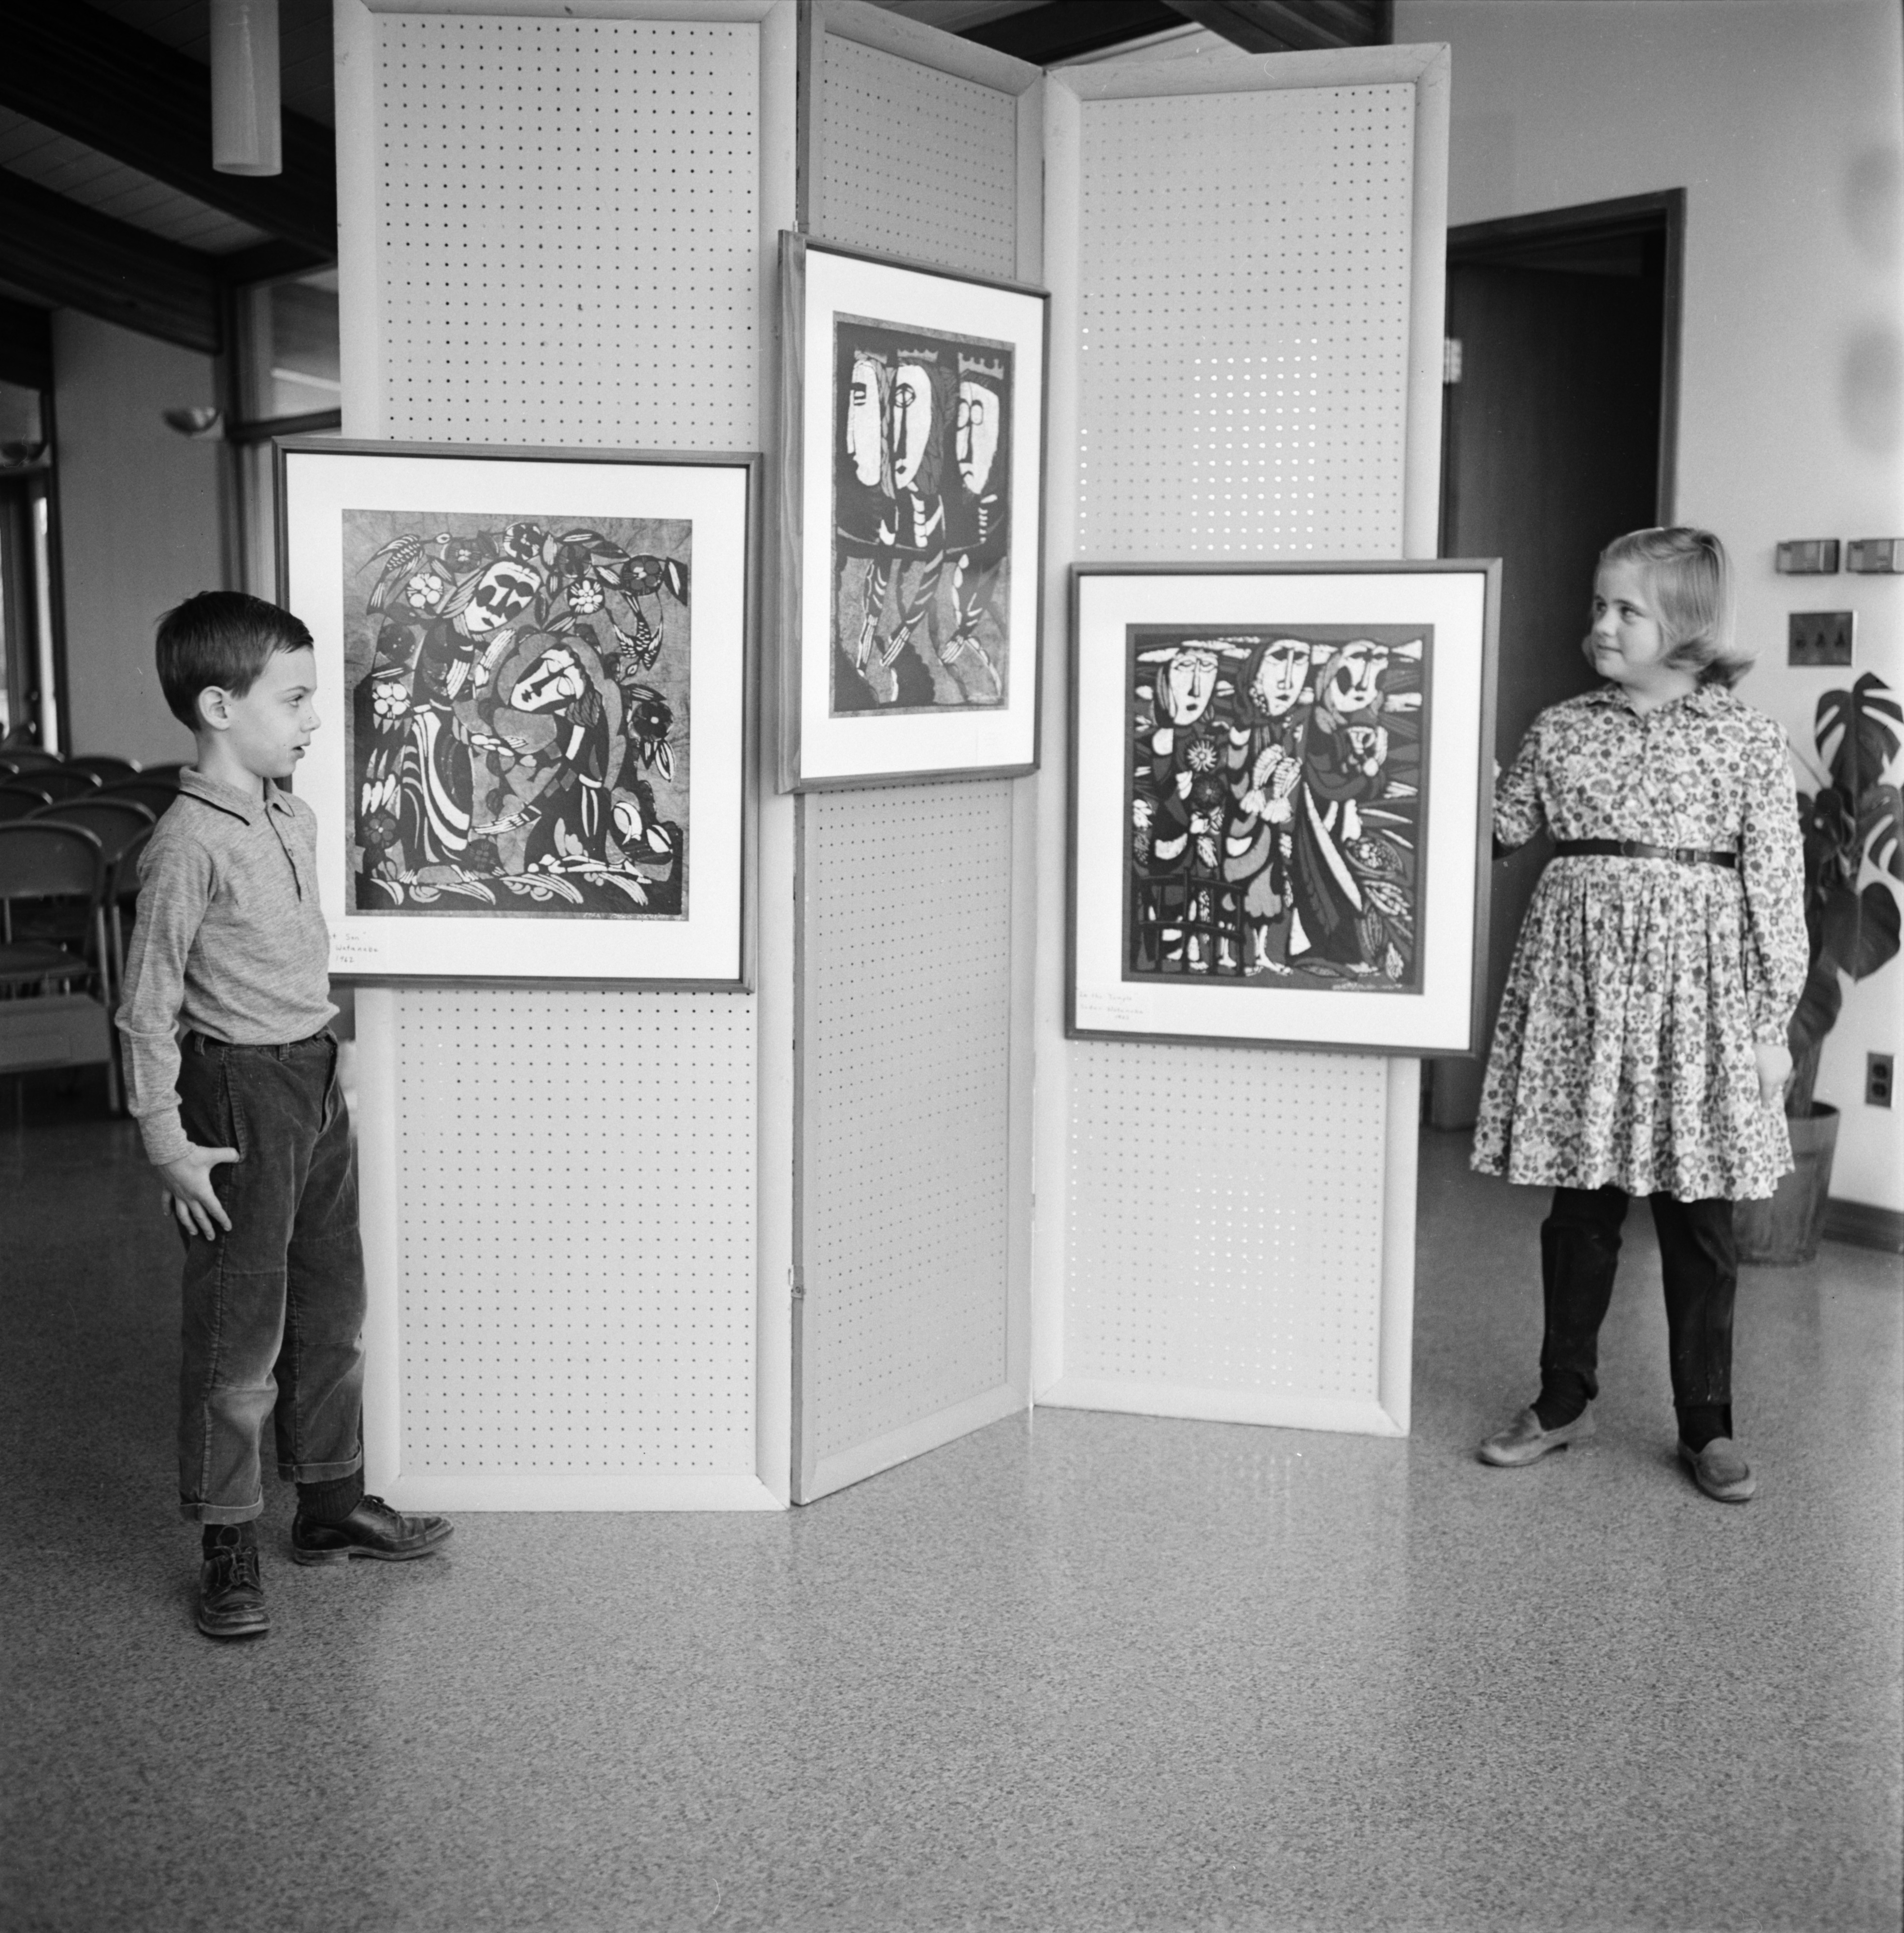 Peter Goodman and Karen Steinaway with Japanese prints at Church of the Good Shepherd, February 1965 image